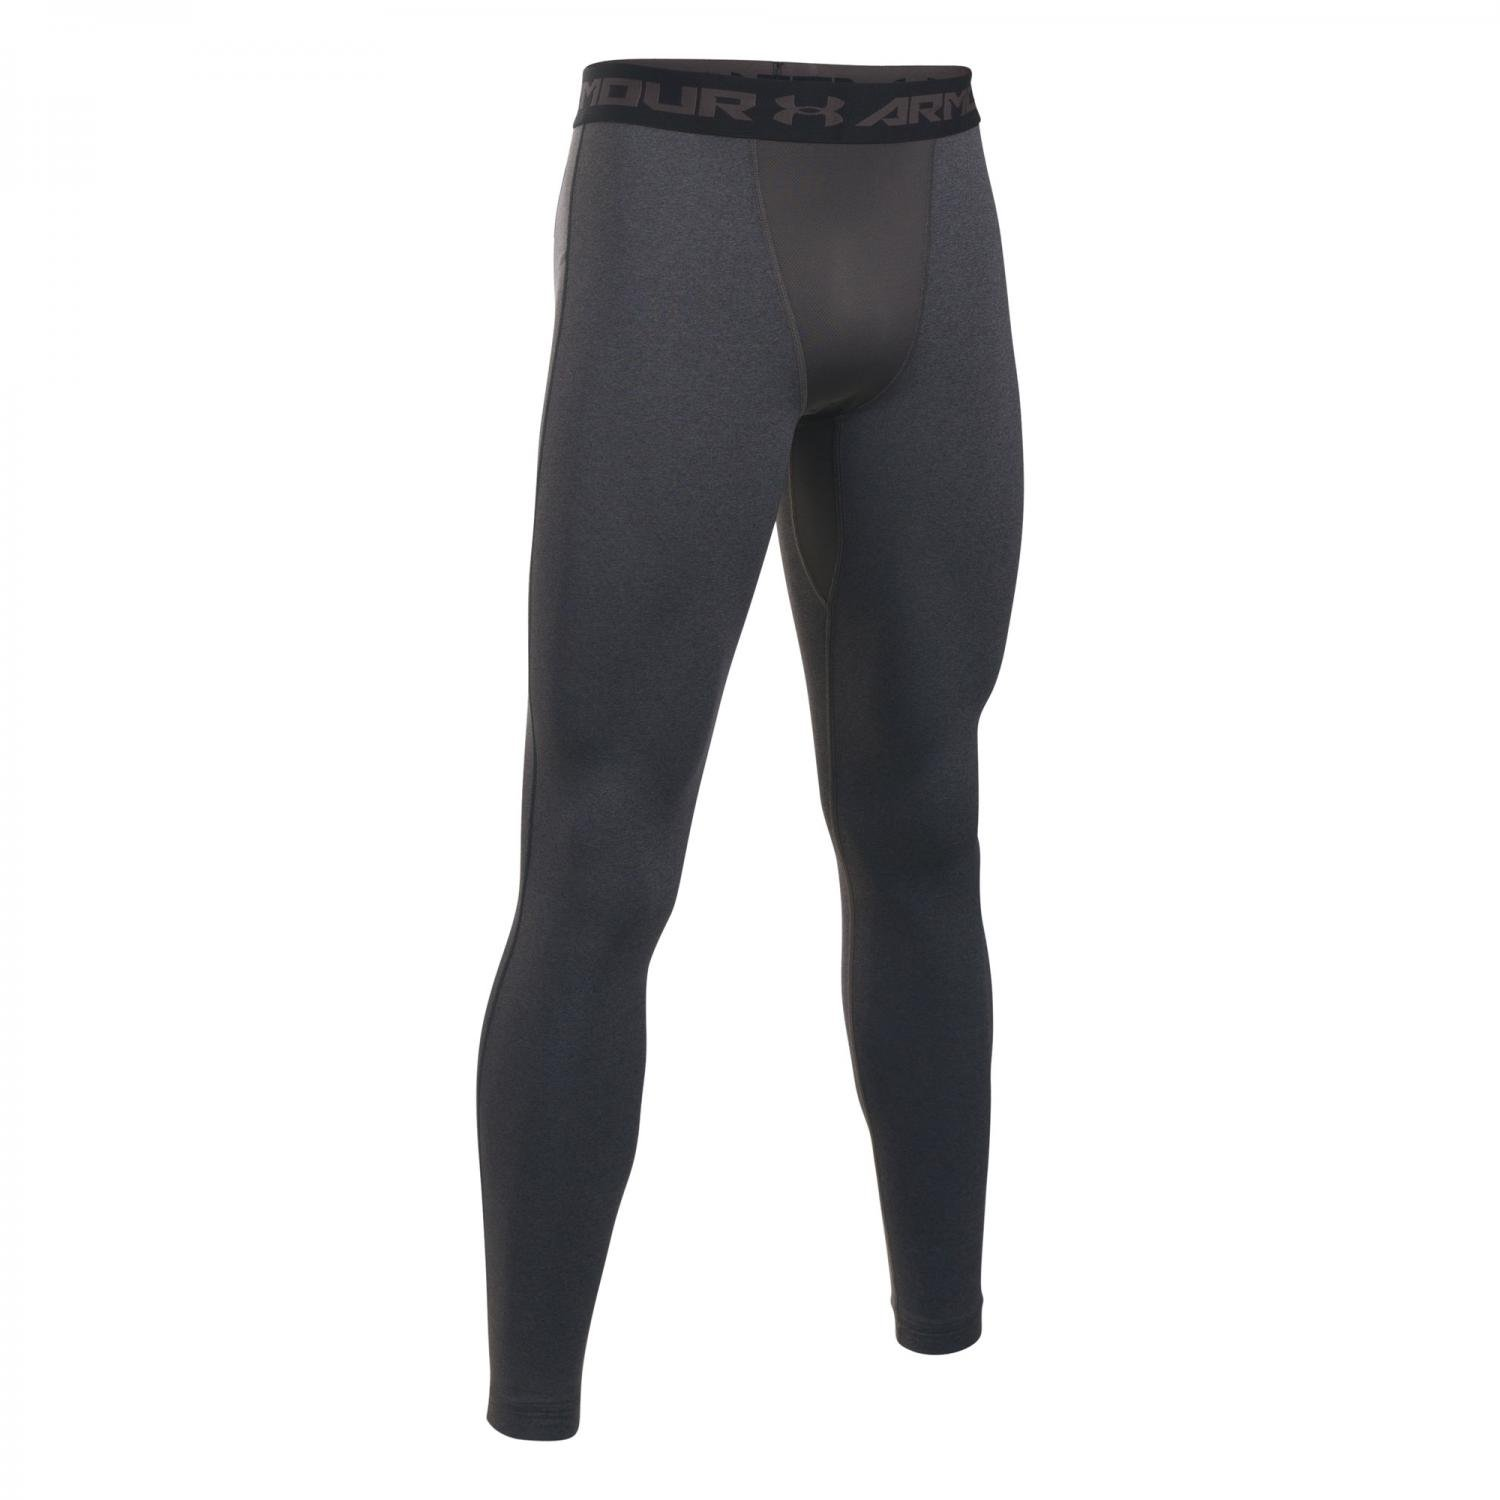 Under Armour 1265649-001, Pantaloni da Fitness Uomo